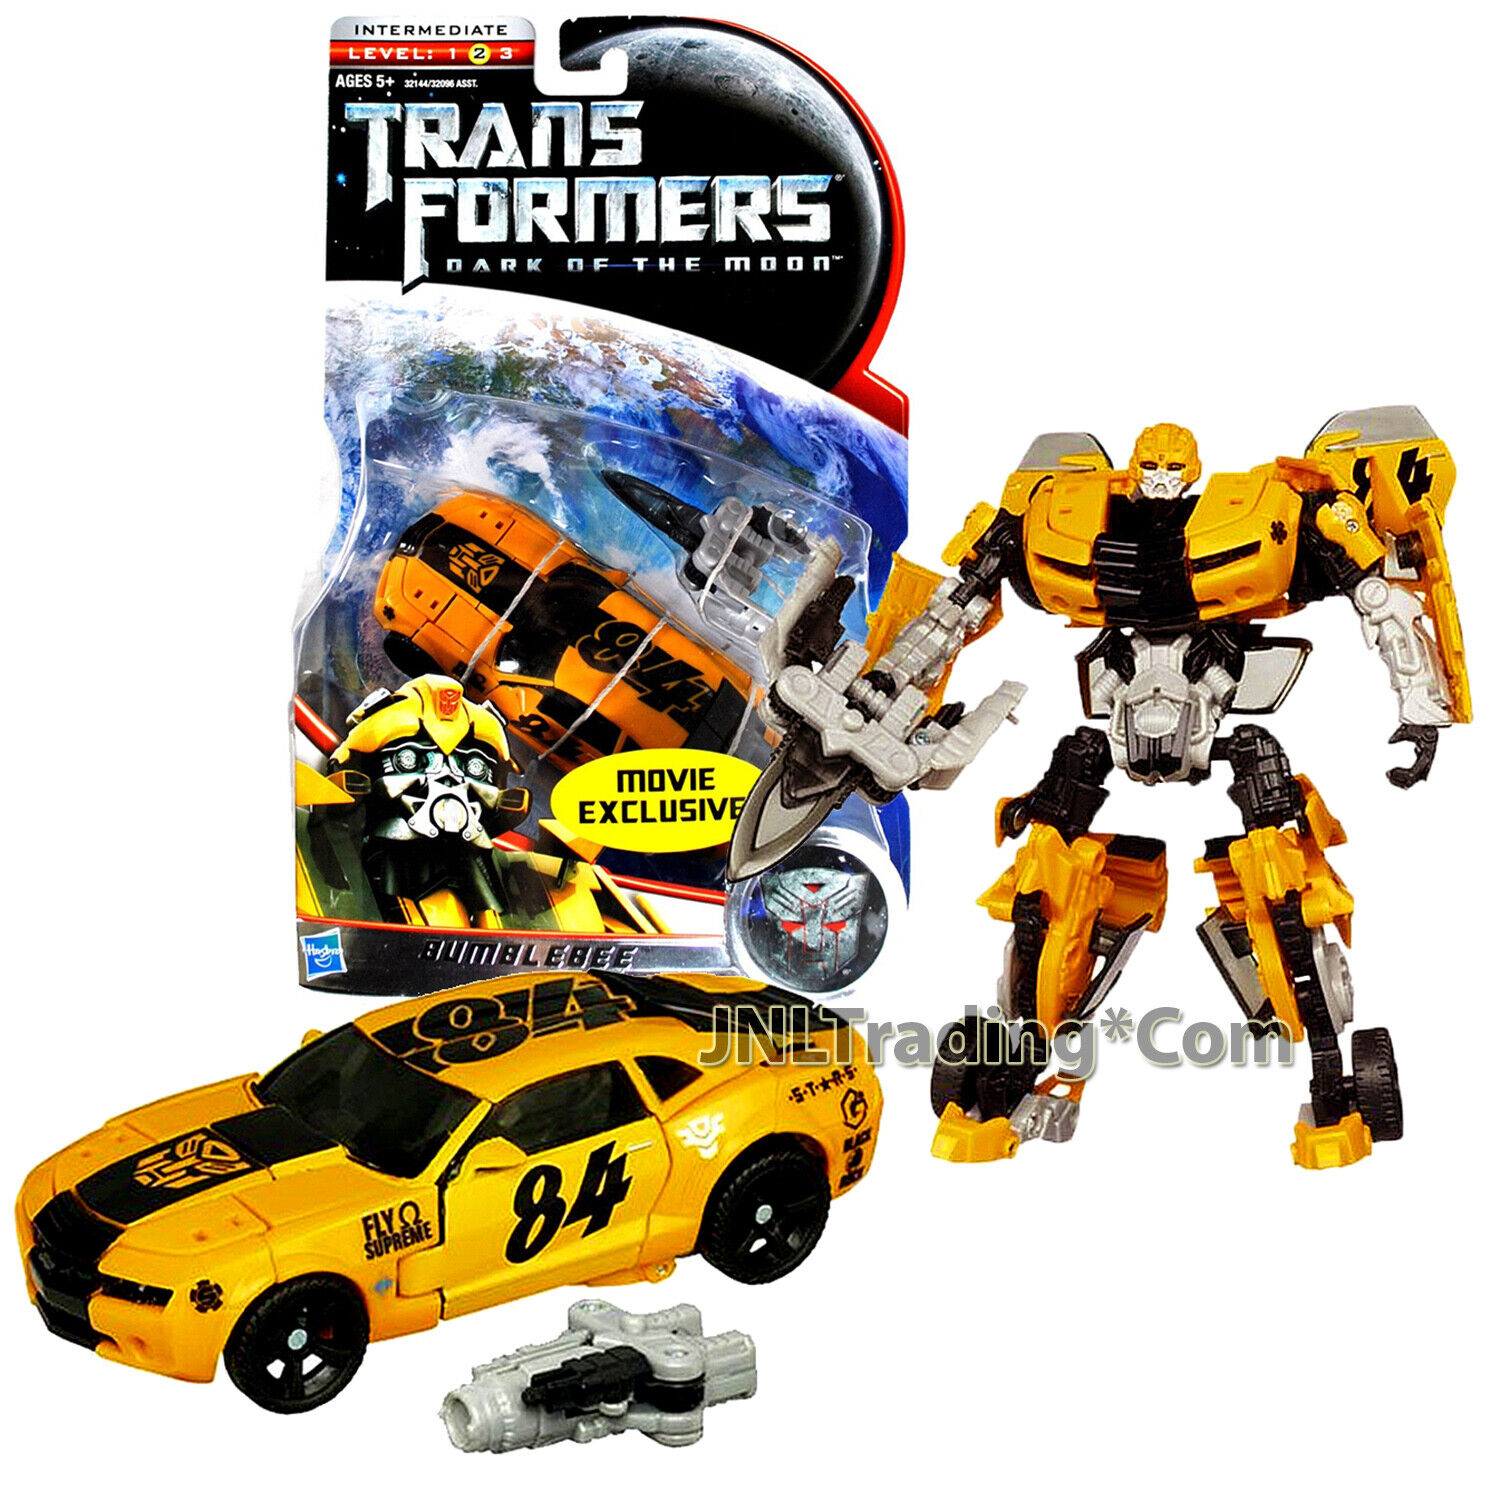 Yr 2010 Transformers Dark of the Moon Deluxe classe 6  cifra Exclusive BUMBLEBEE